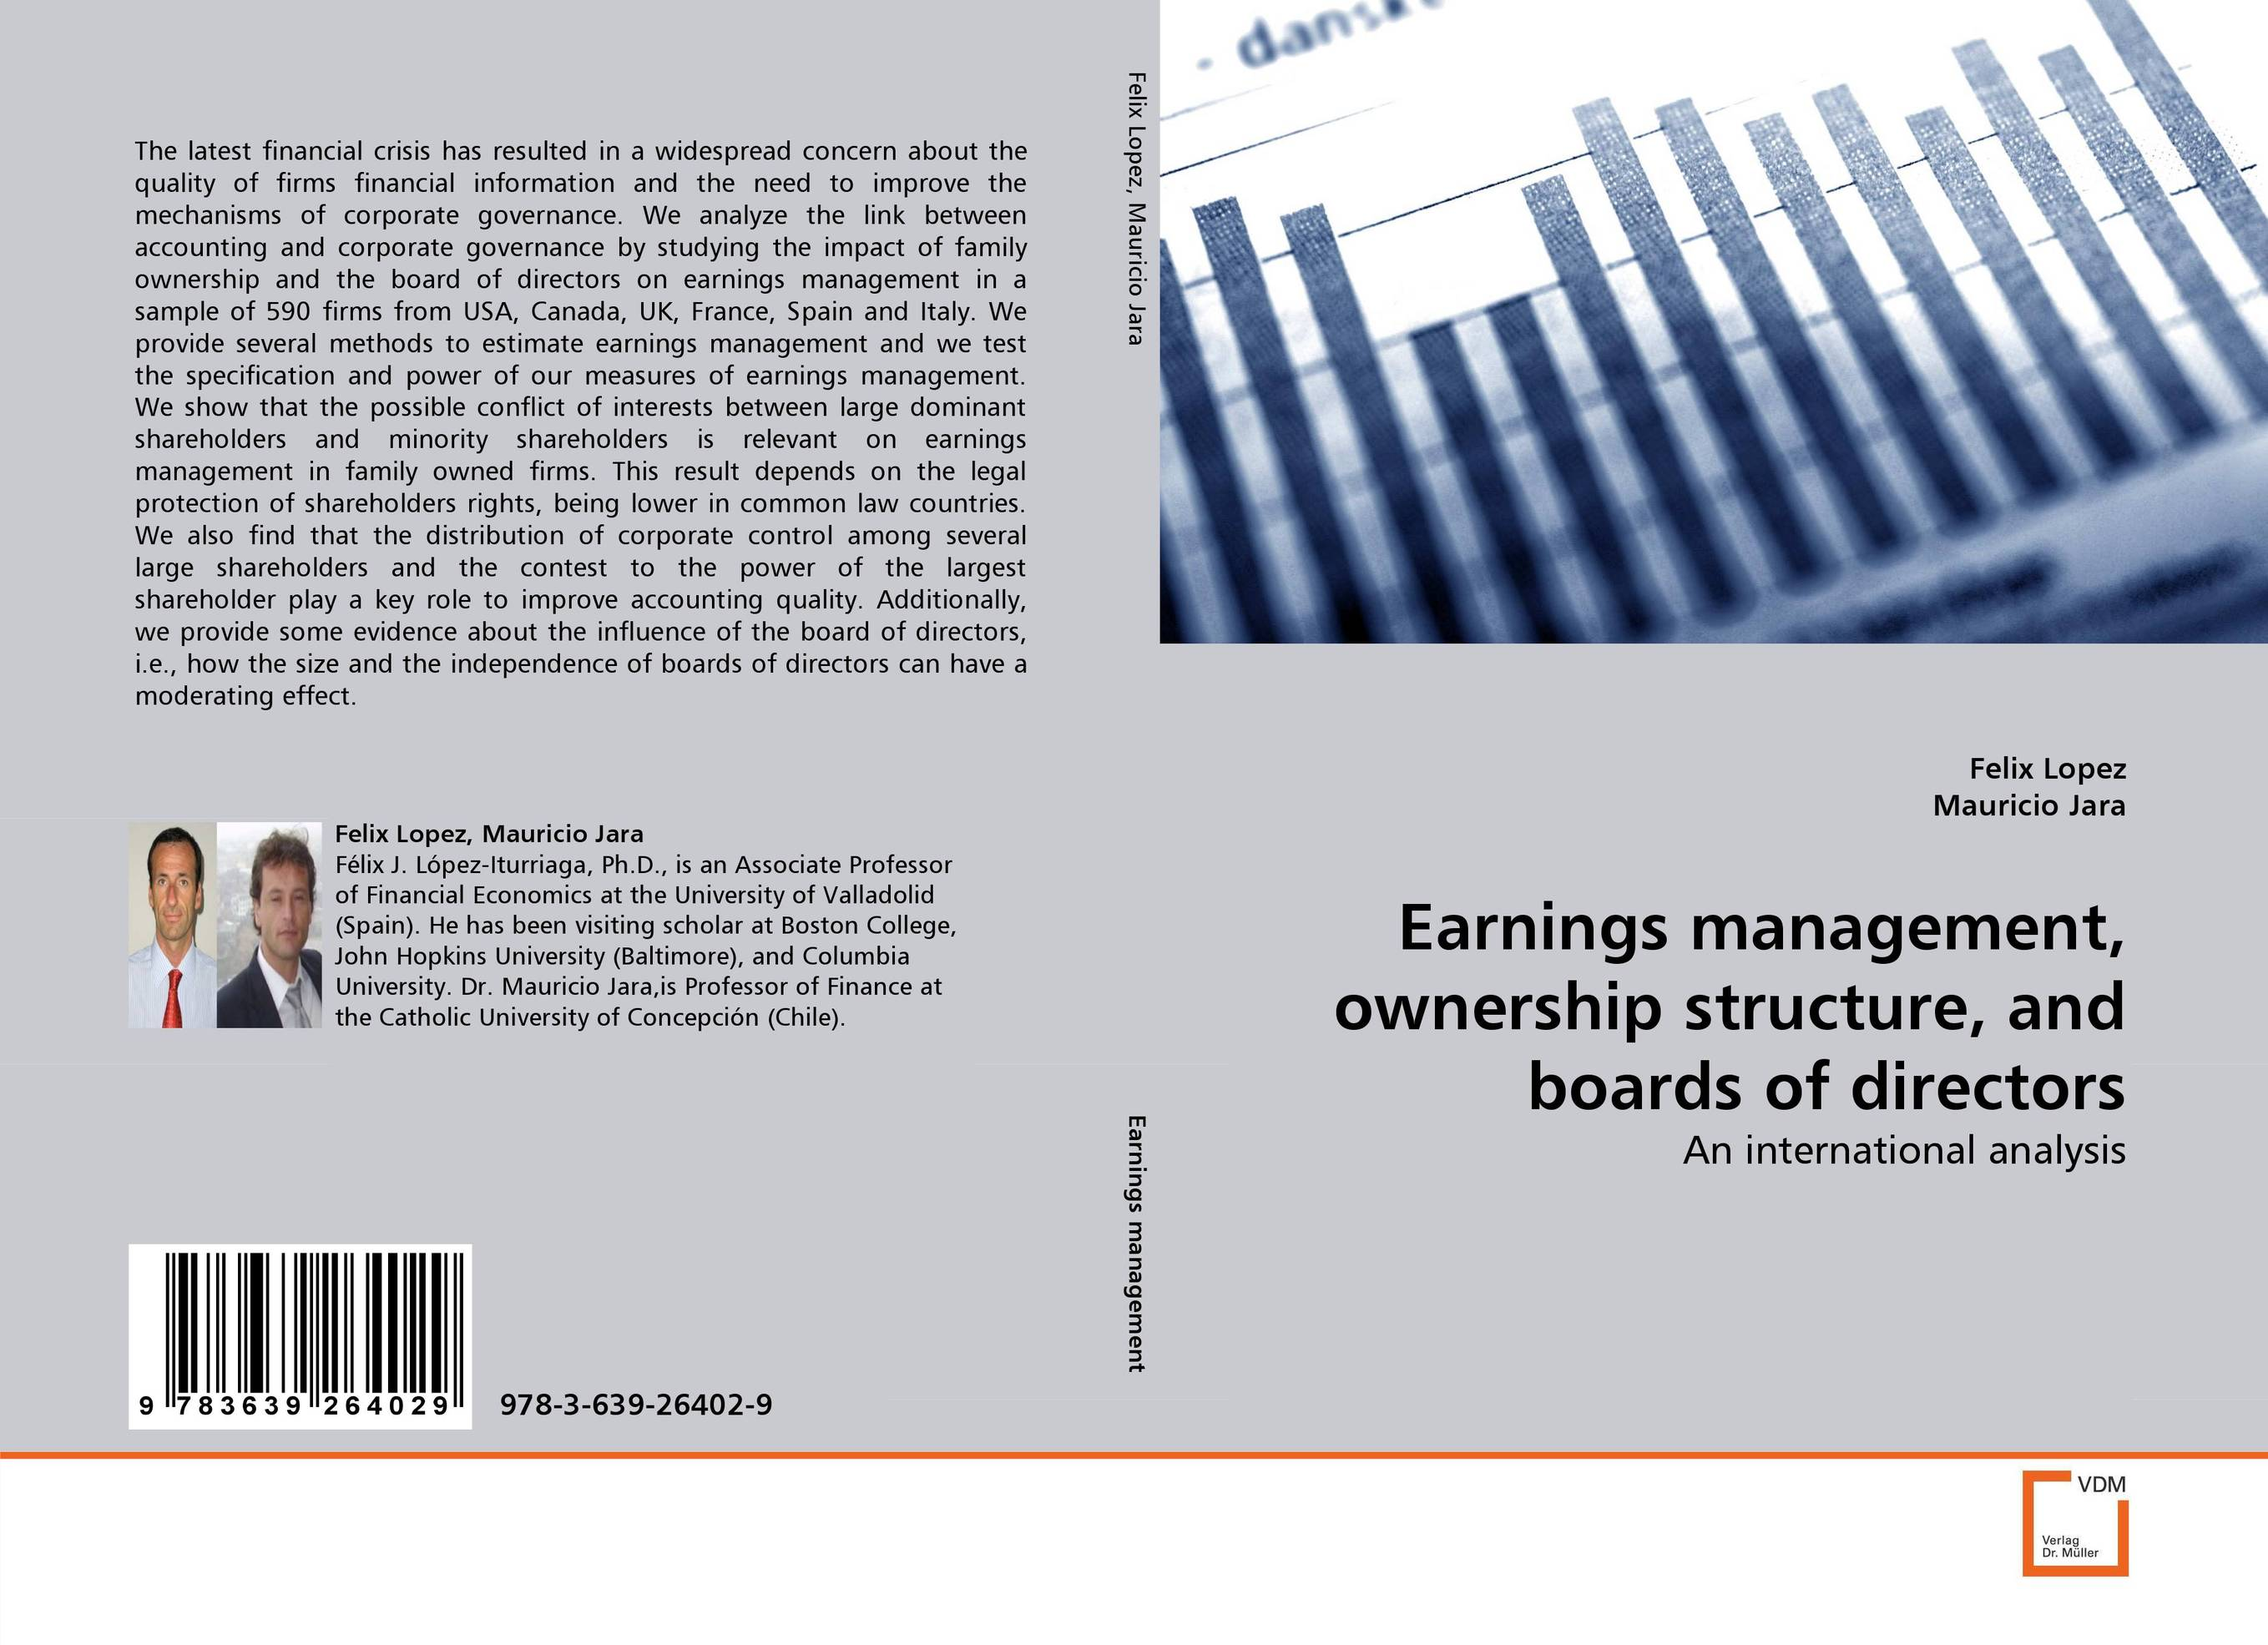 Earnings management, ownership structure, and boards of directors corporate governance audit quality and opportunistic earnings